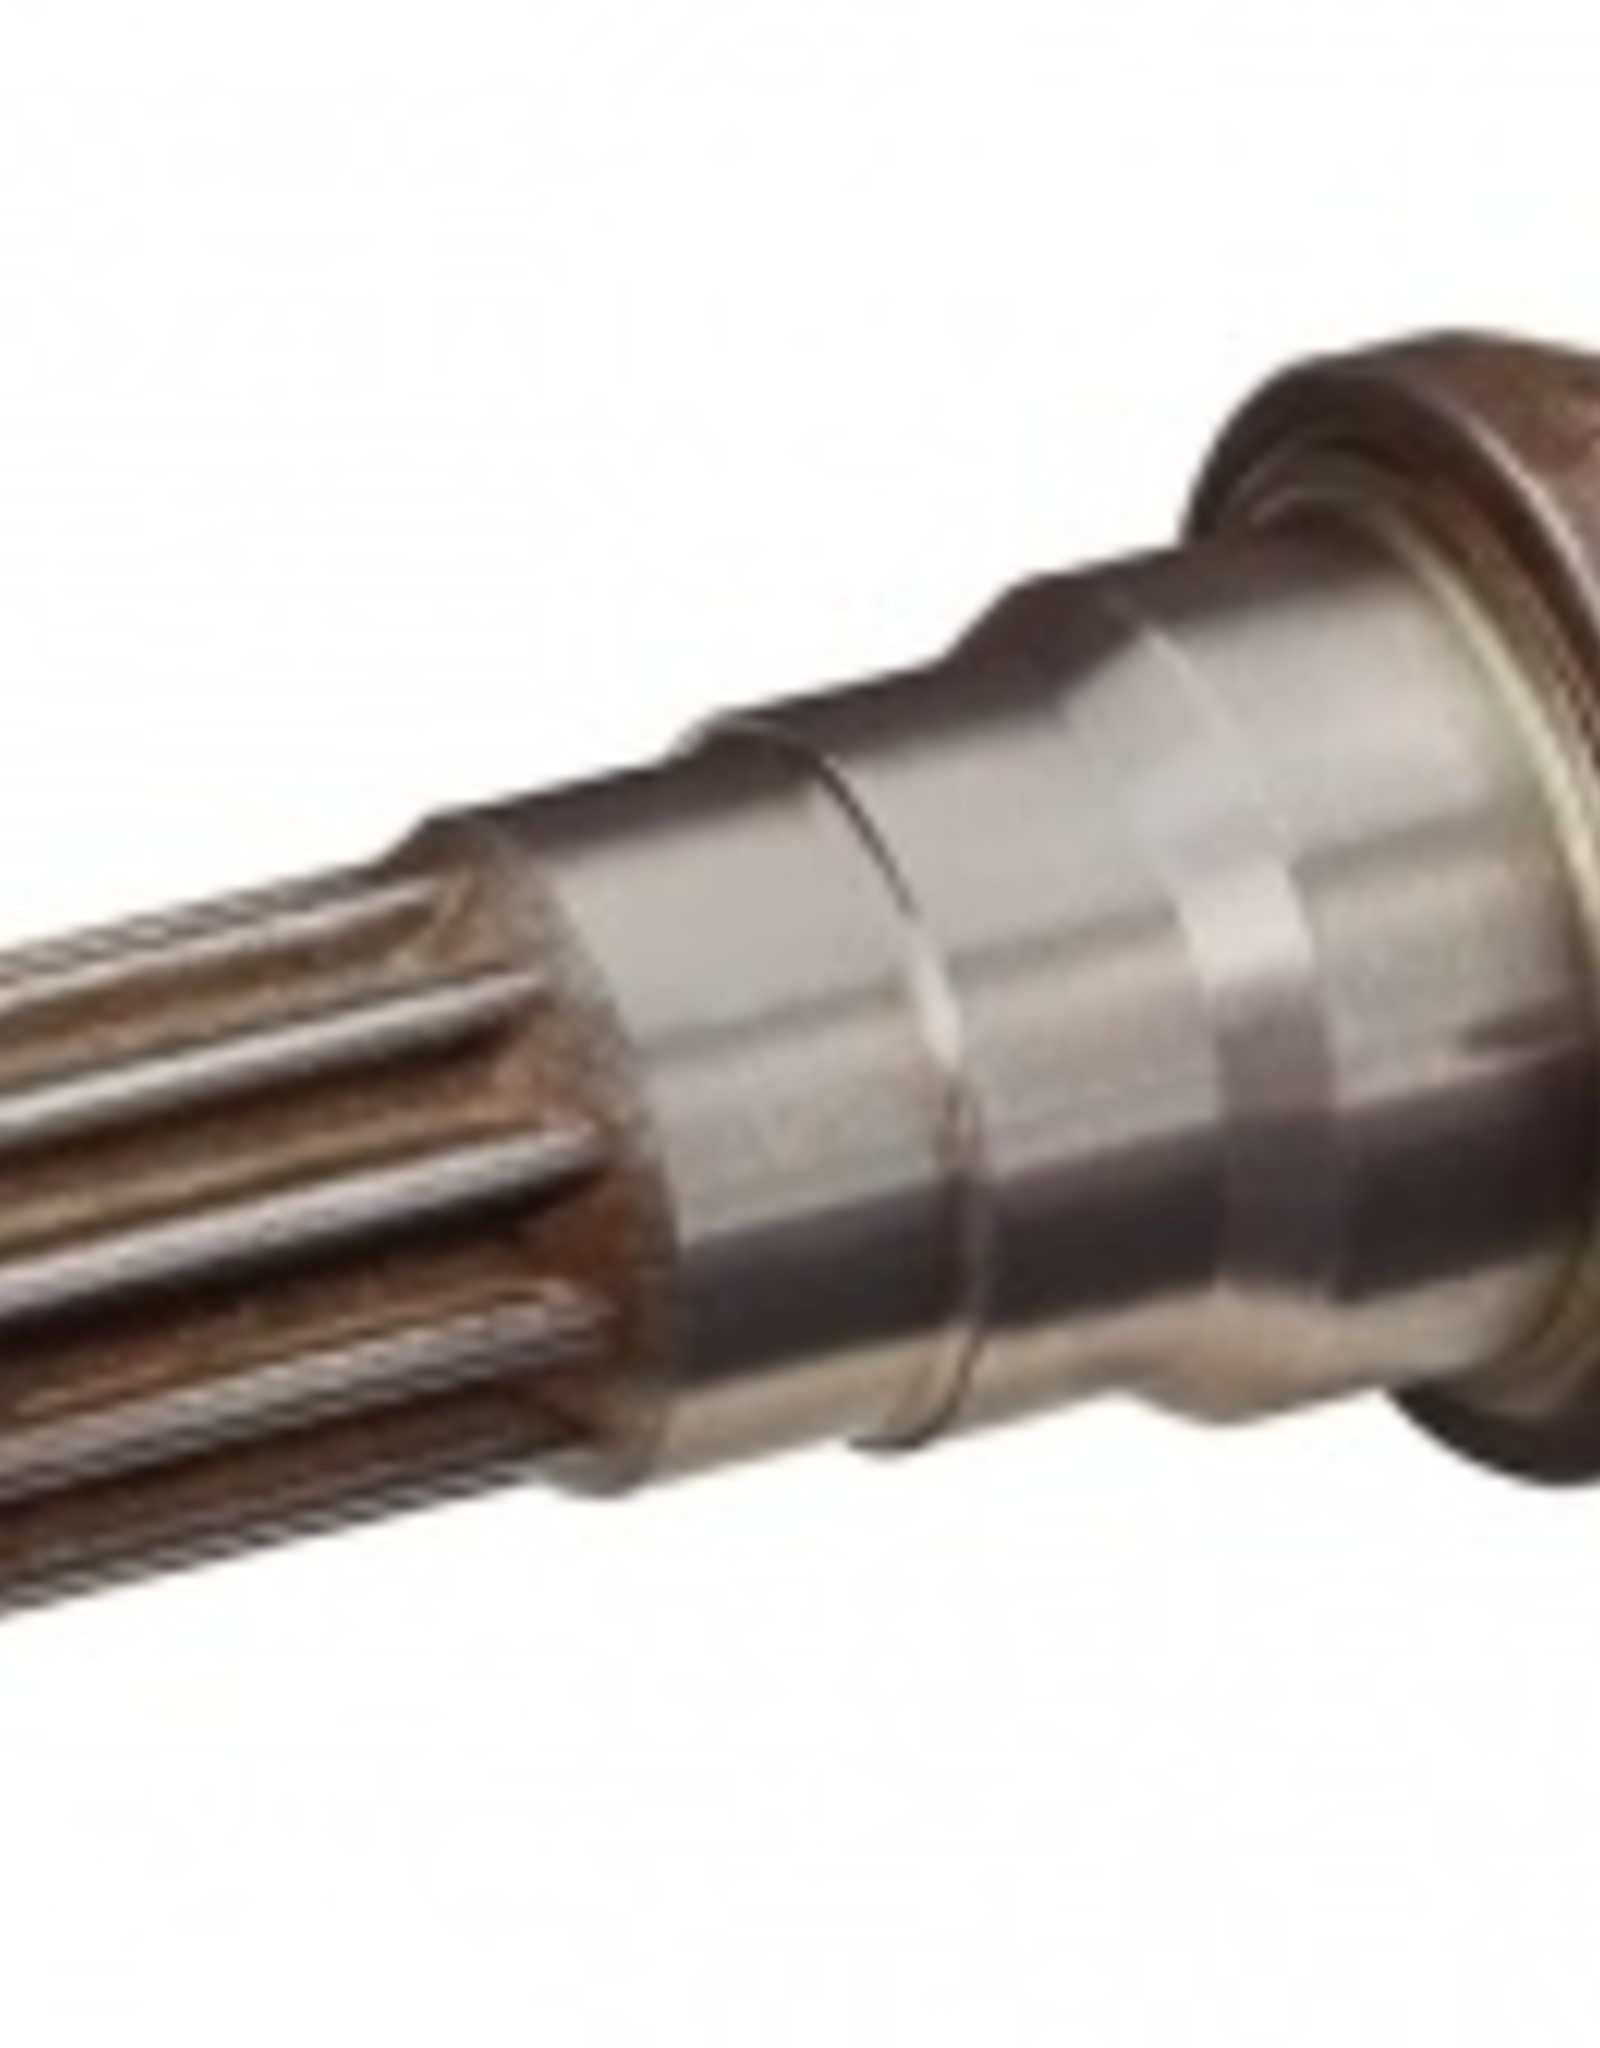 Traxxas Traxxas X-Maxx Pinion gear, differential, 13-tooth (front) (use with #7779 42-tooth differential ring gear)